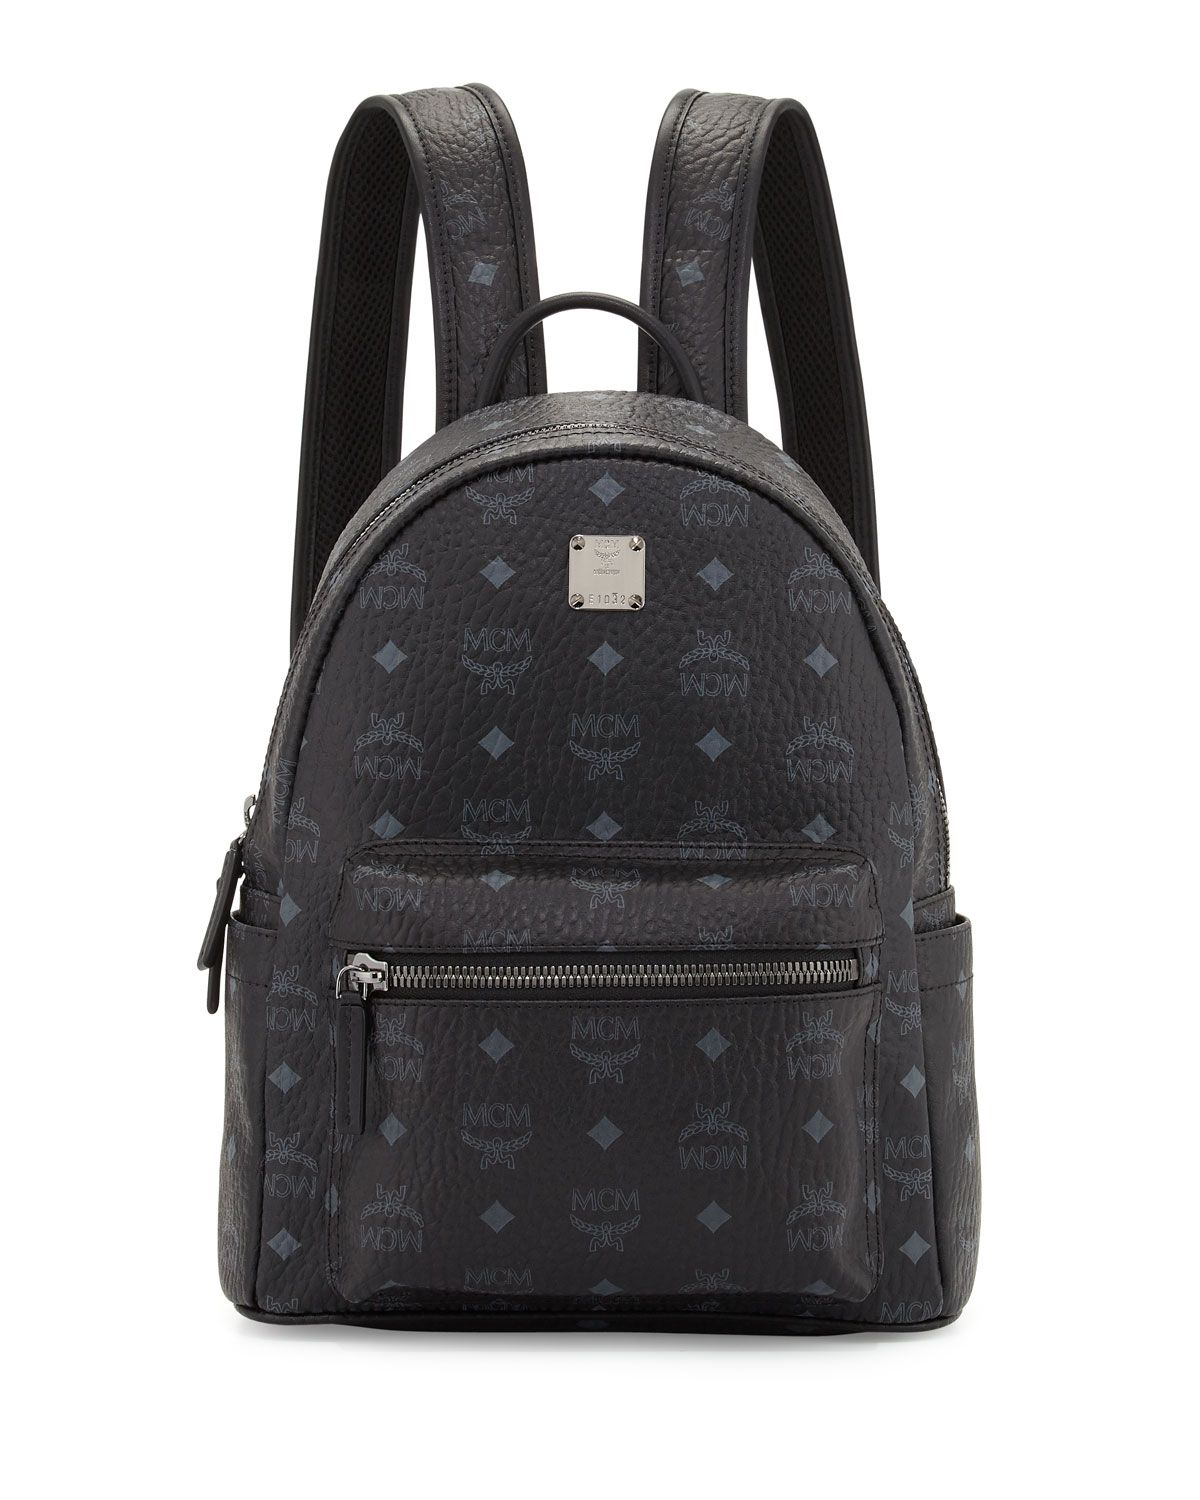 MCM monogrammed backpack in coated canvas. Rolled top handle  3.3